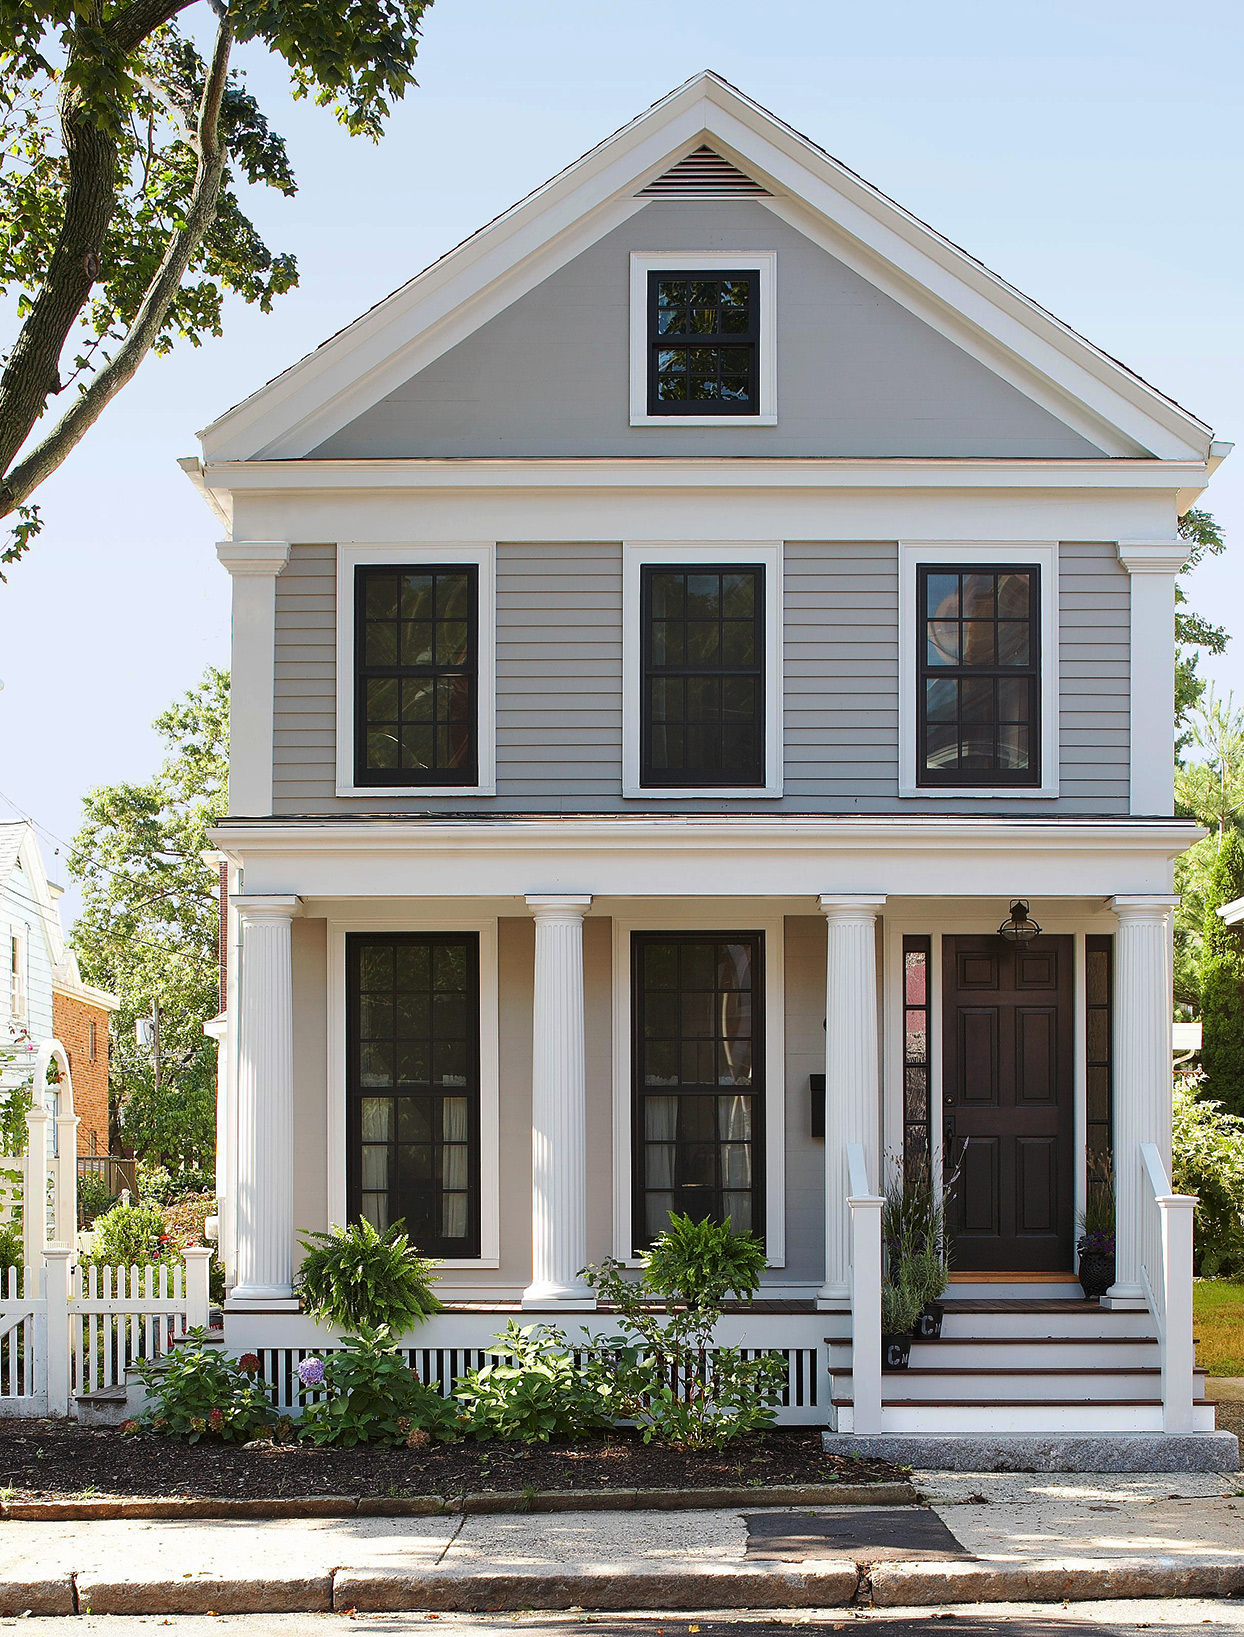 gray symmetrical colonial style home